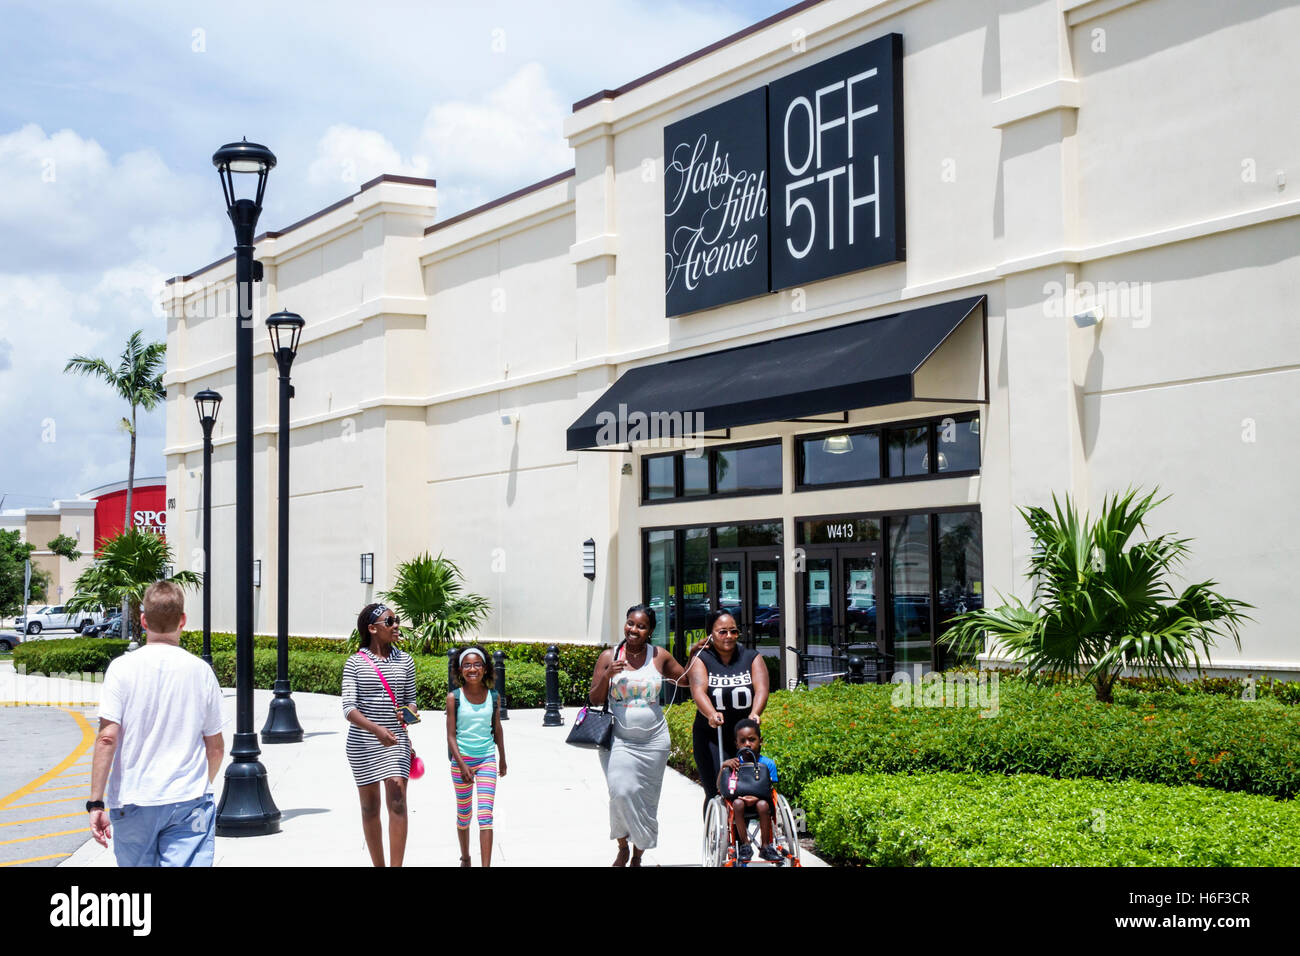 cef16f00cf64 Palm Beach Florida Outlets shopping Saks Fifth Avenue Off 5th front  entrance Black mother girl boy family